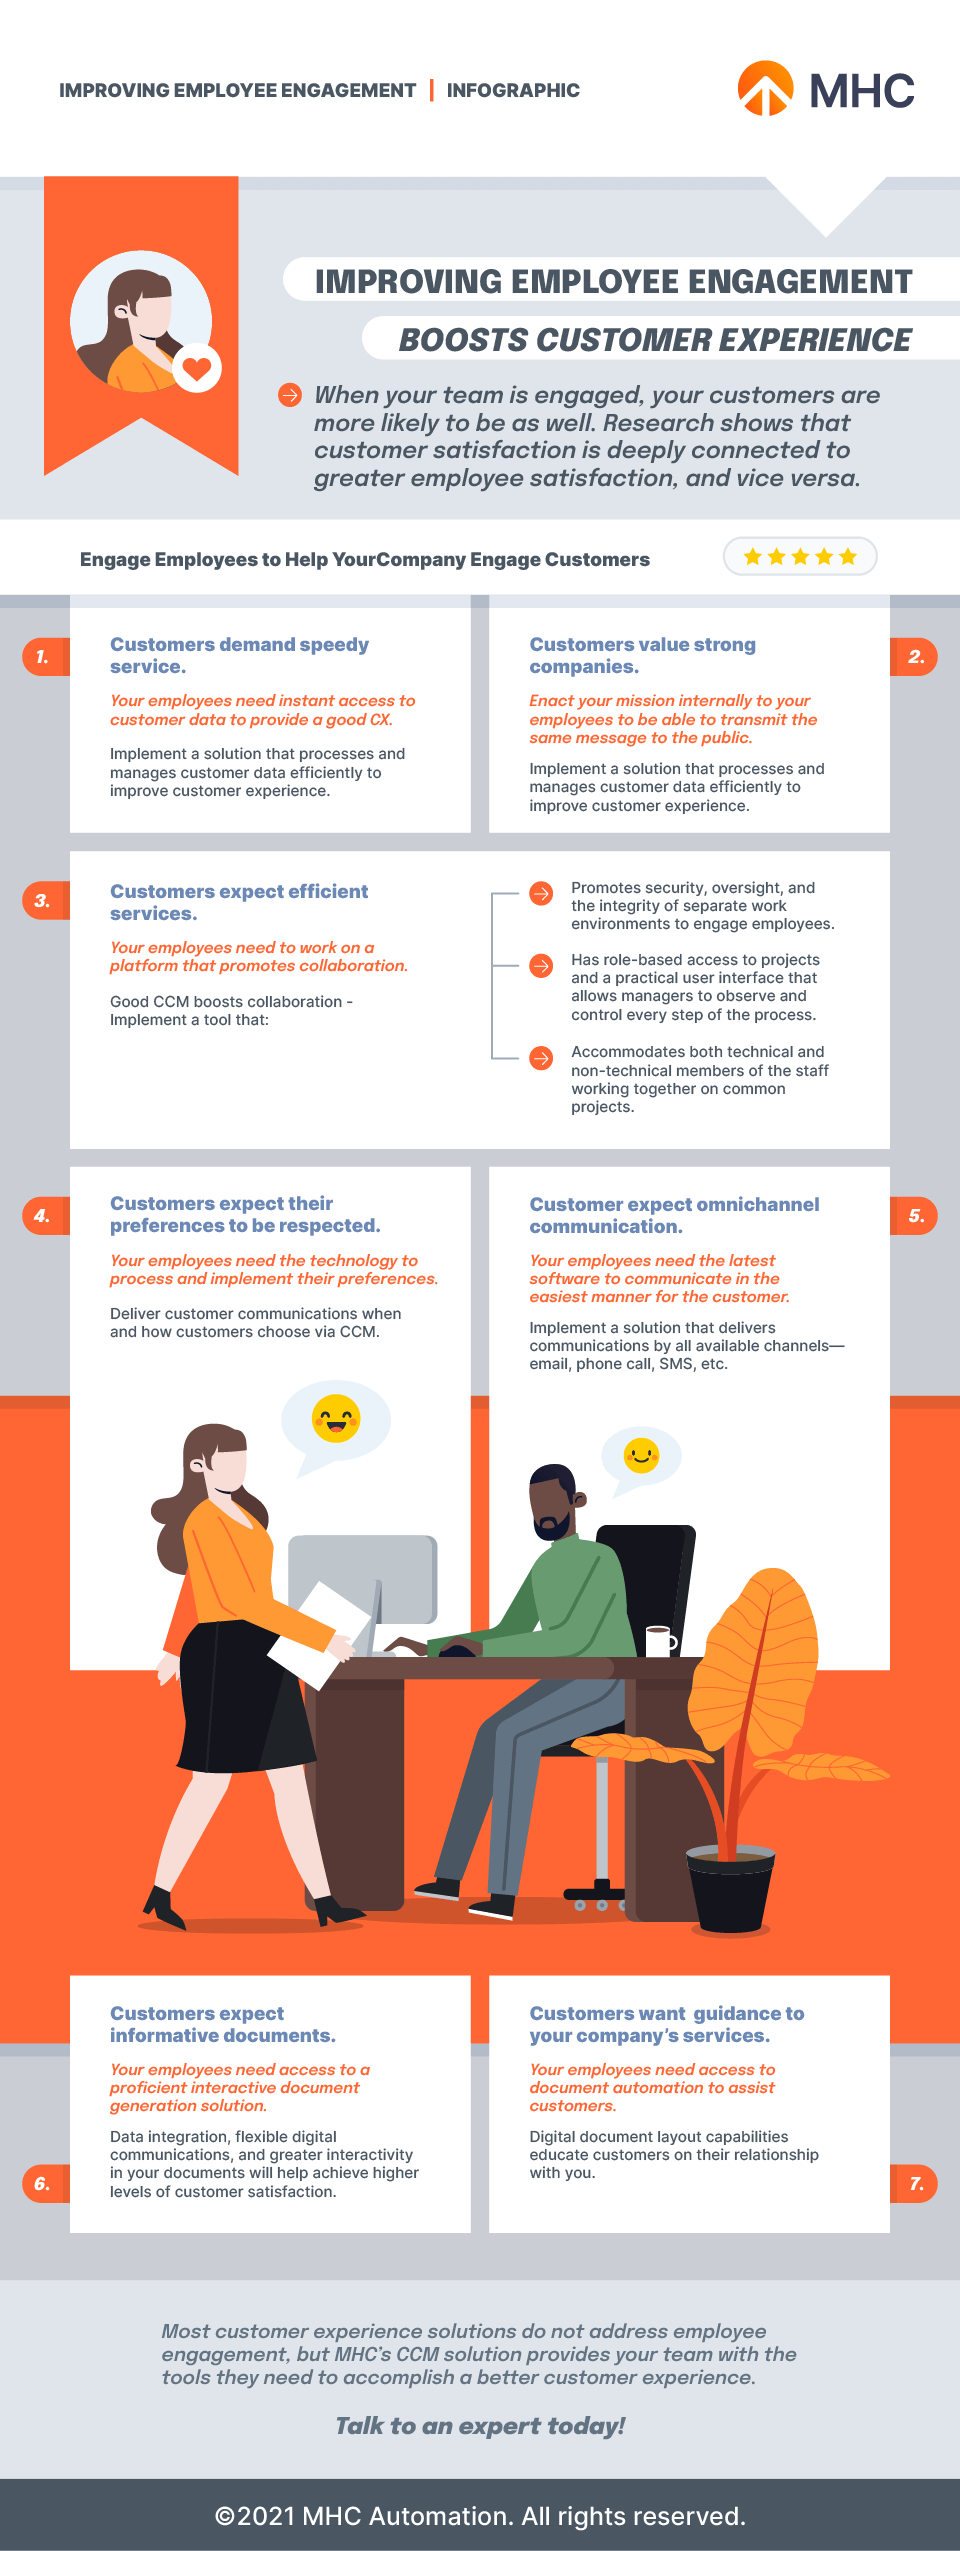 Improving Employee Engagement Boosts Customer Experience infographic